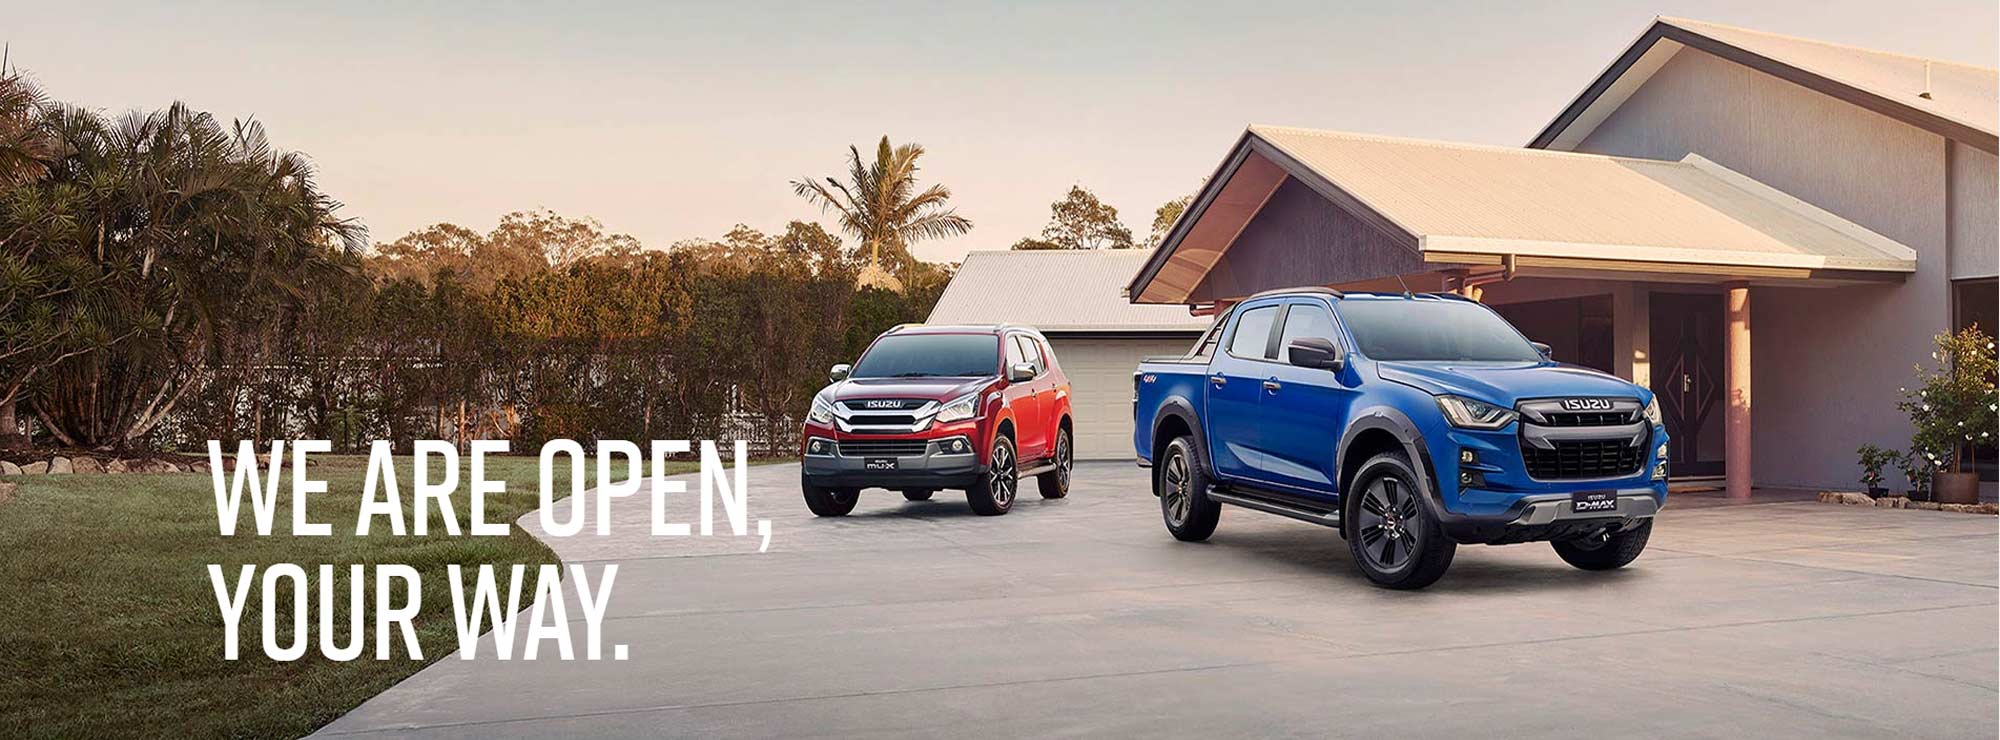 Wayne Phillips Isuzu UTE We Are Open